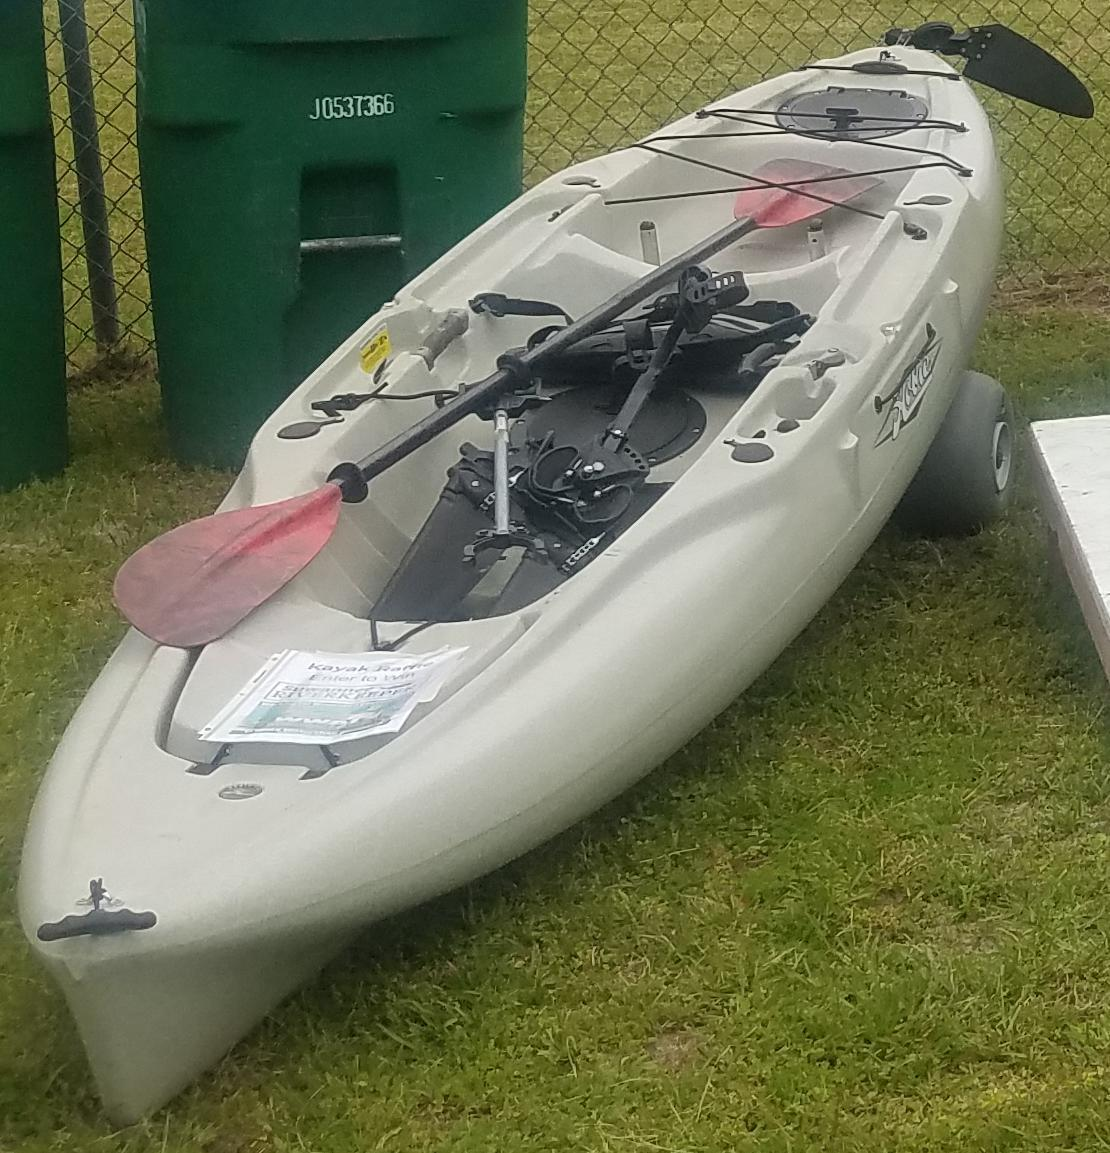 1110x1153 With rudder, Raffle Kayak, in Pictures: Wild Azalea Festival, White Springs, FL, by John S. Quarterman, for WWALS.net, 16 March 2019